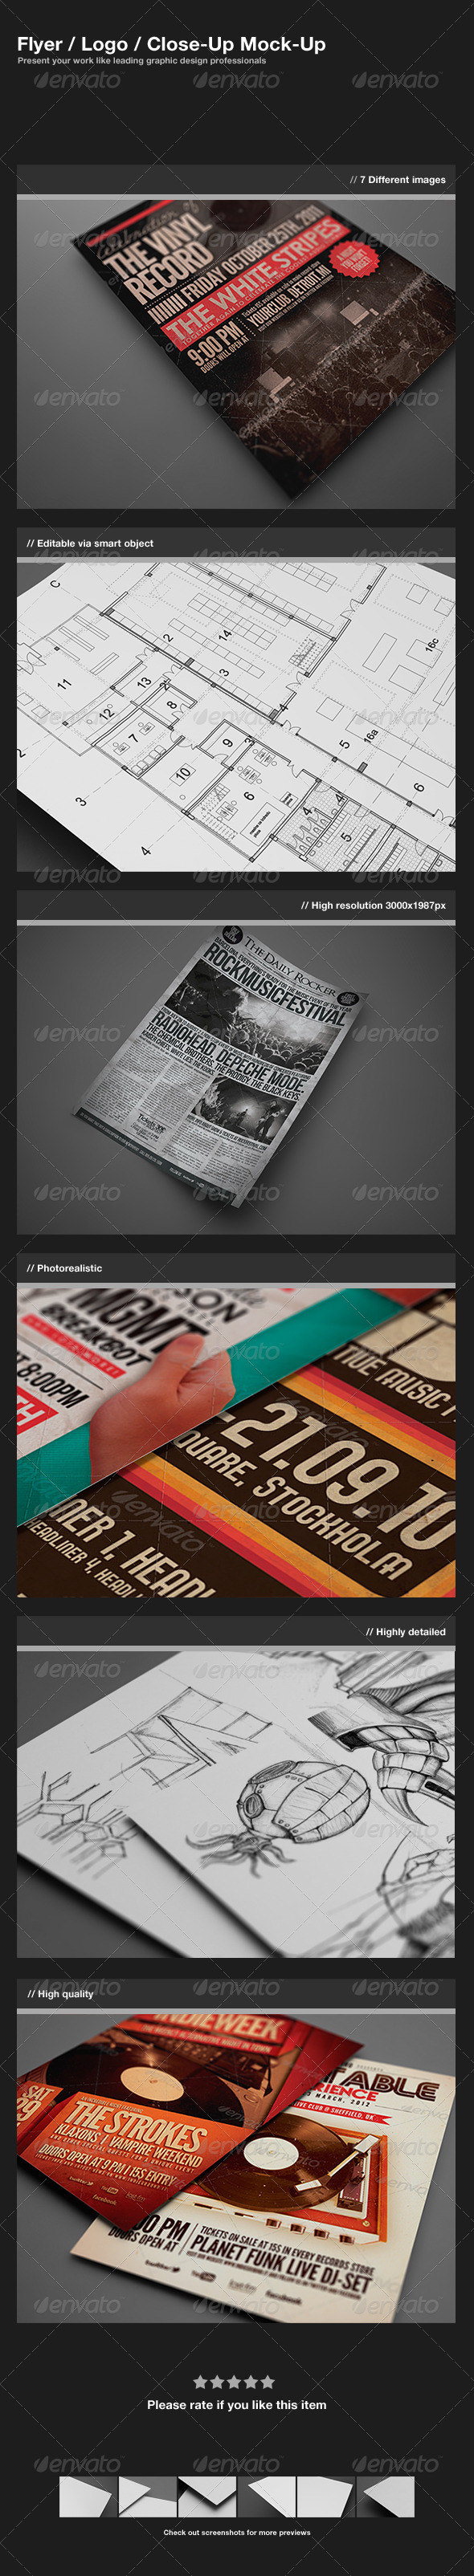 Flyer / Logo / Close-Up Mock-Up - Flyers Print